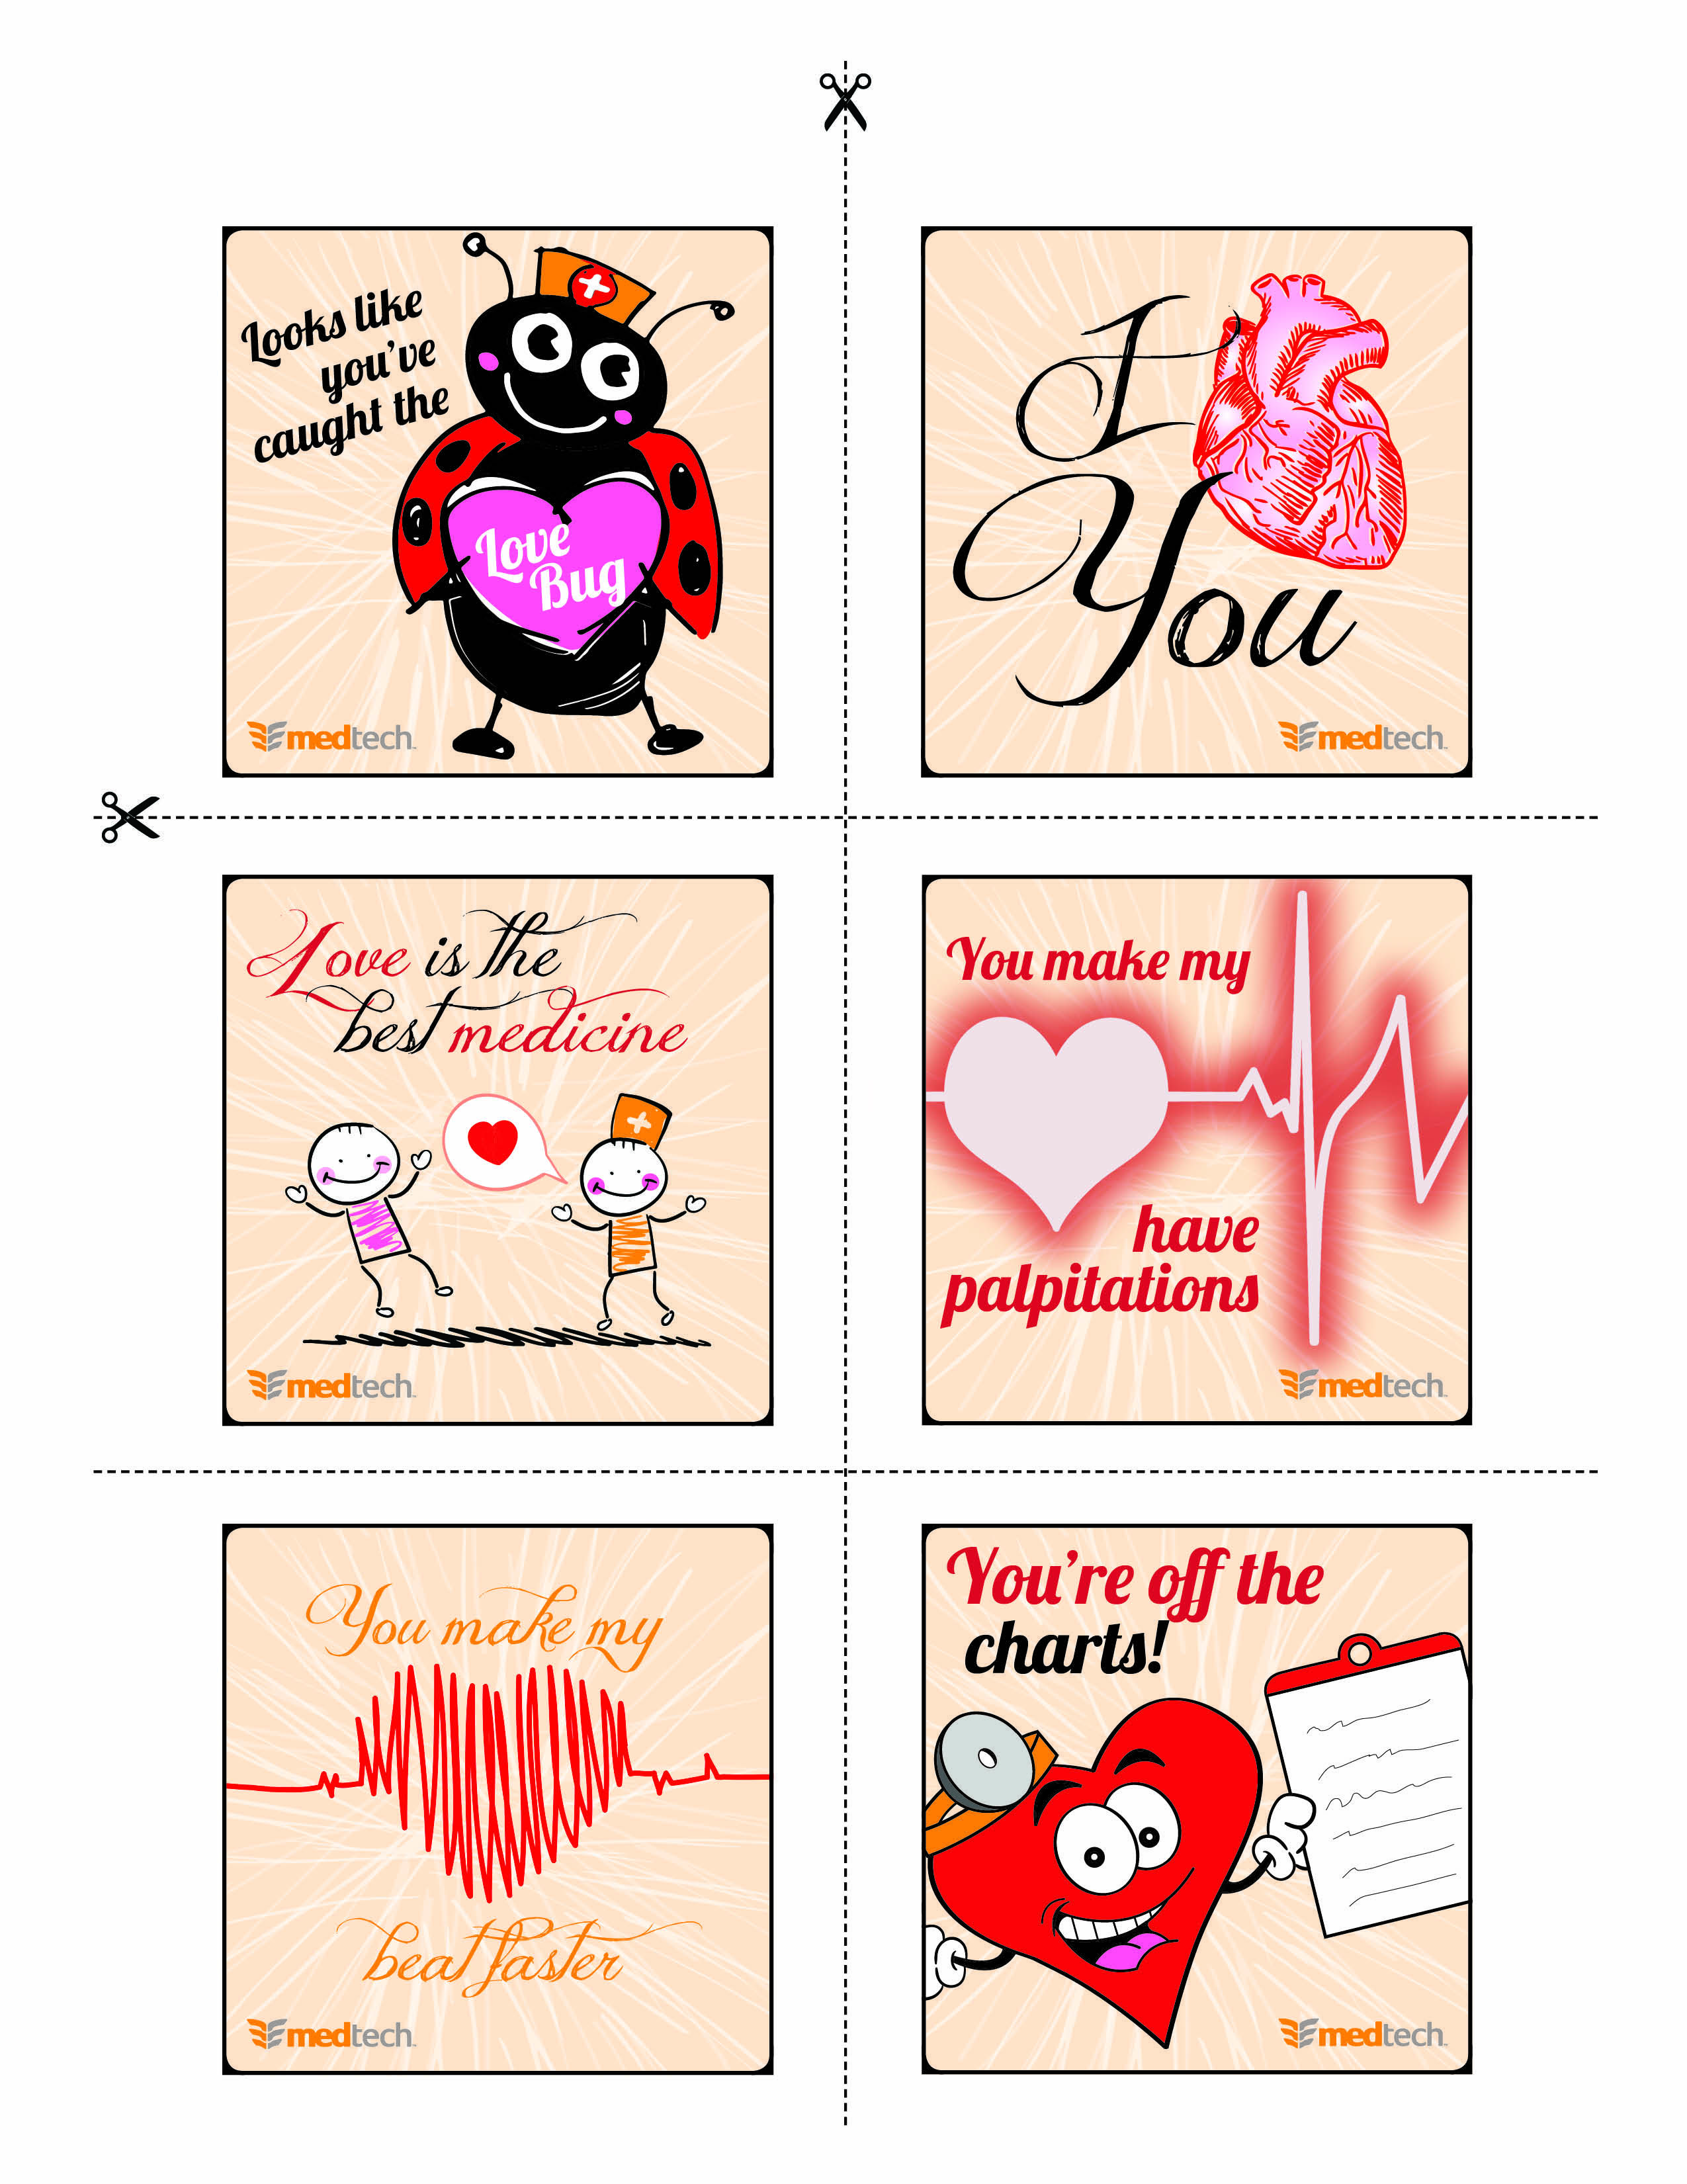 healthcare valentines day 2014 card collection medical printable valentinesday - Pinterest Valentines Cards